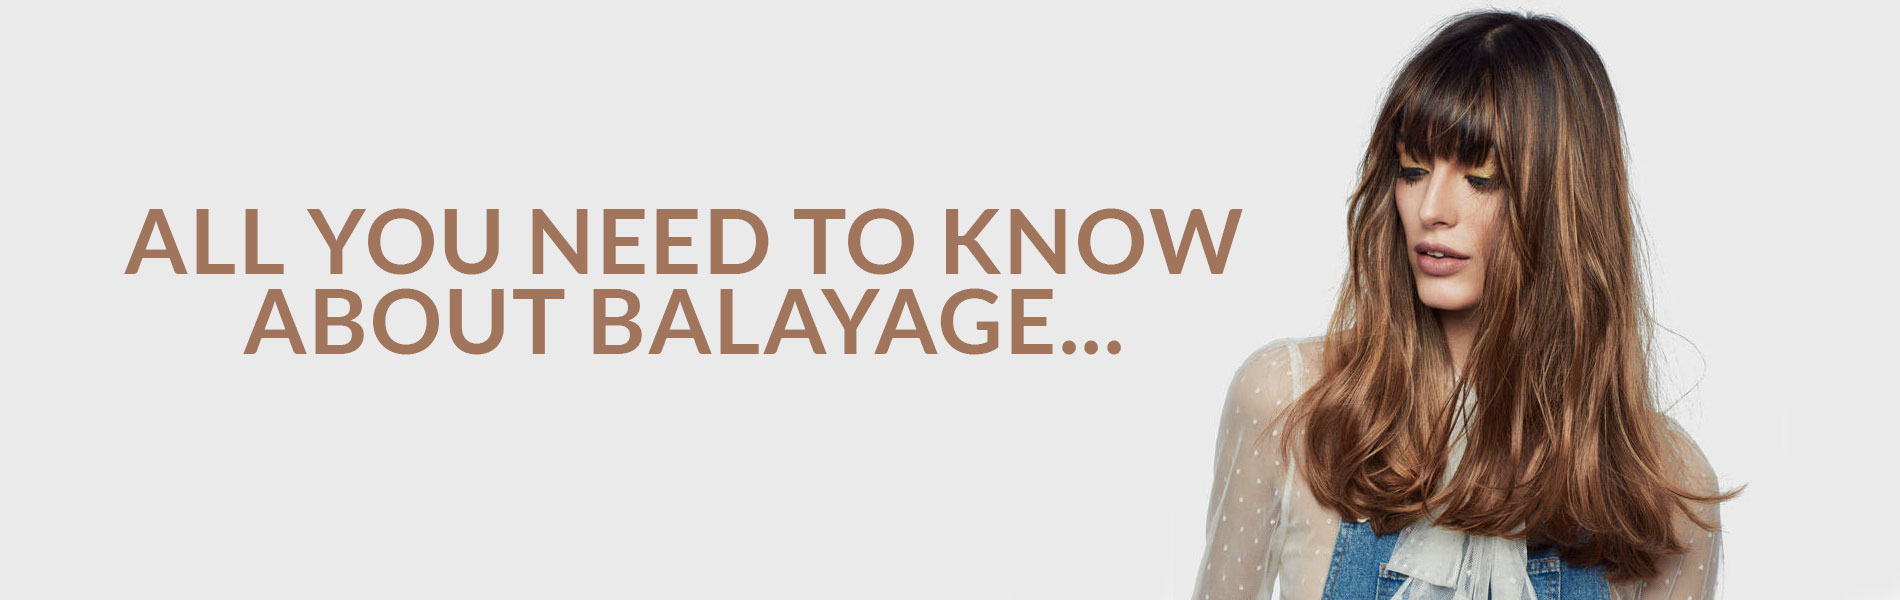 All You Need To Know About Balayage...